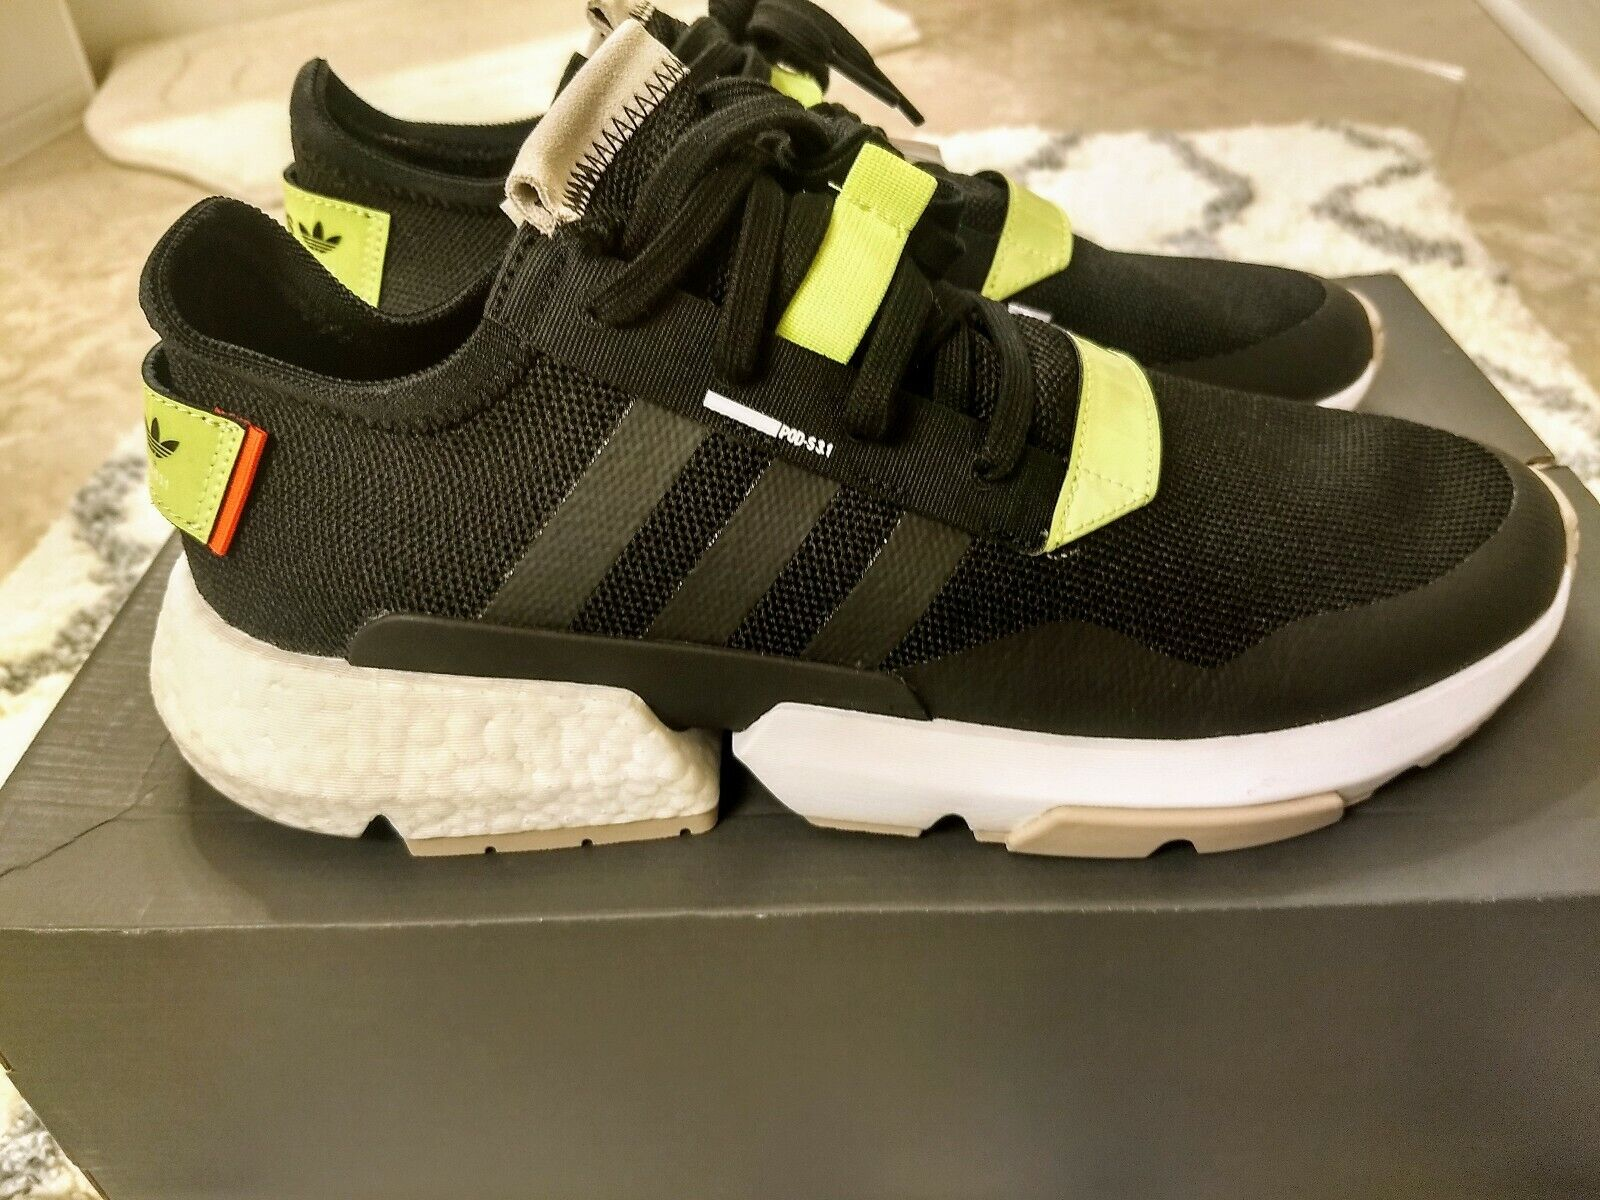 Adidas Men's POD-S3.1 BD7693, Running shoes. Size 11.5 New in Box.